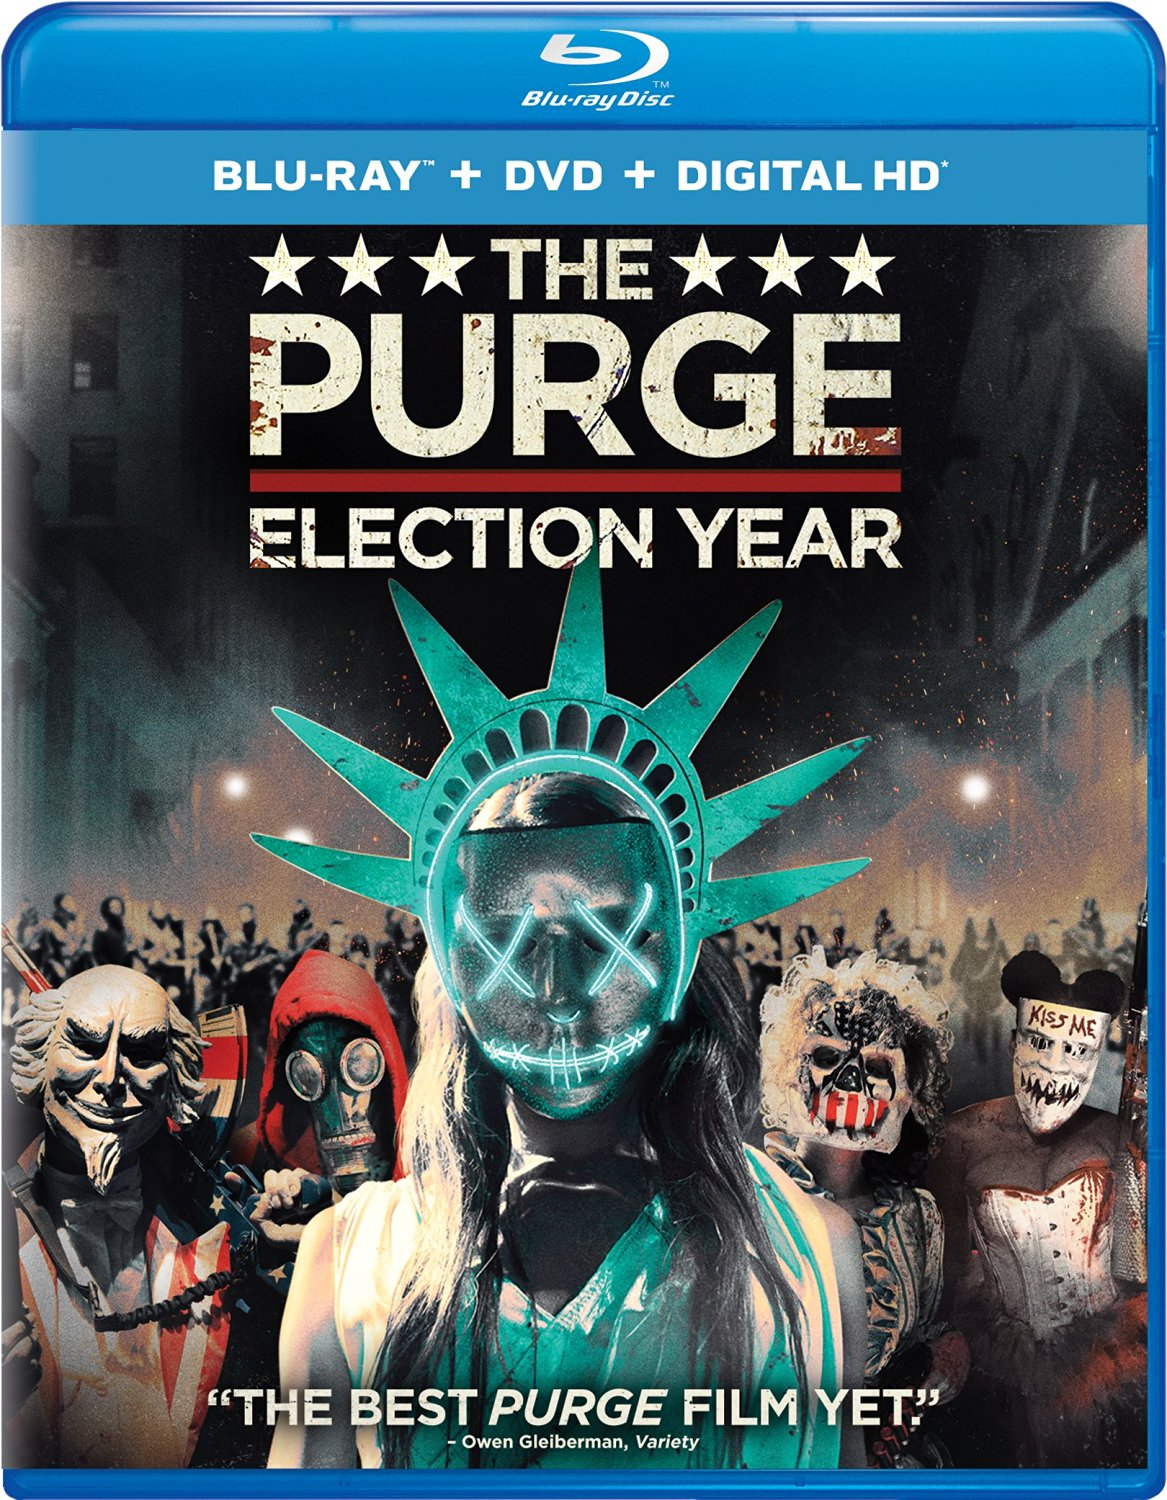 The Purge Election Year Blu-ray Review